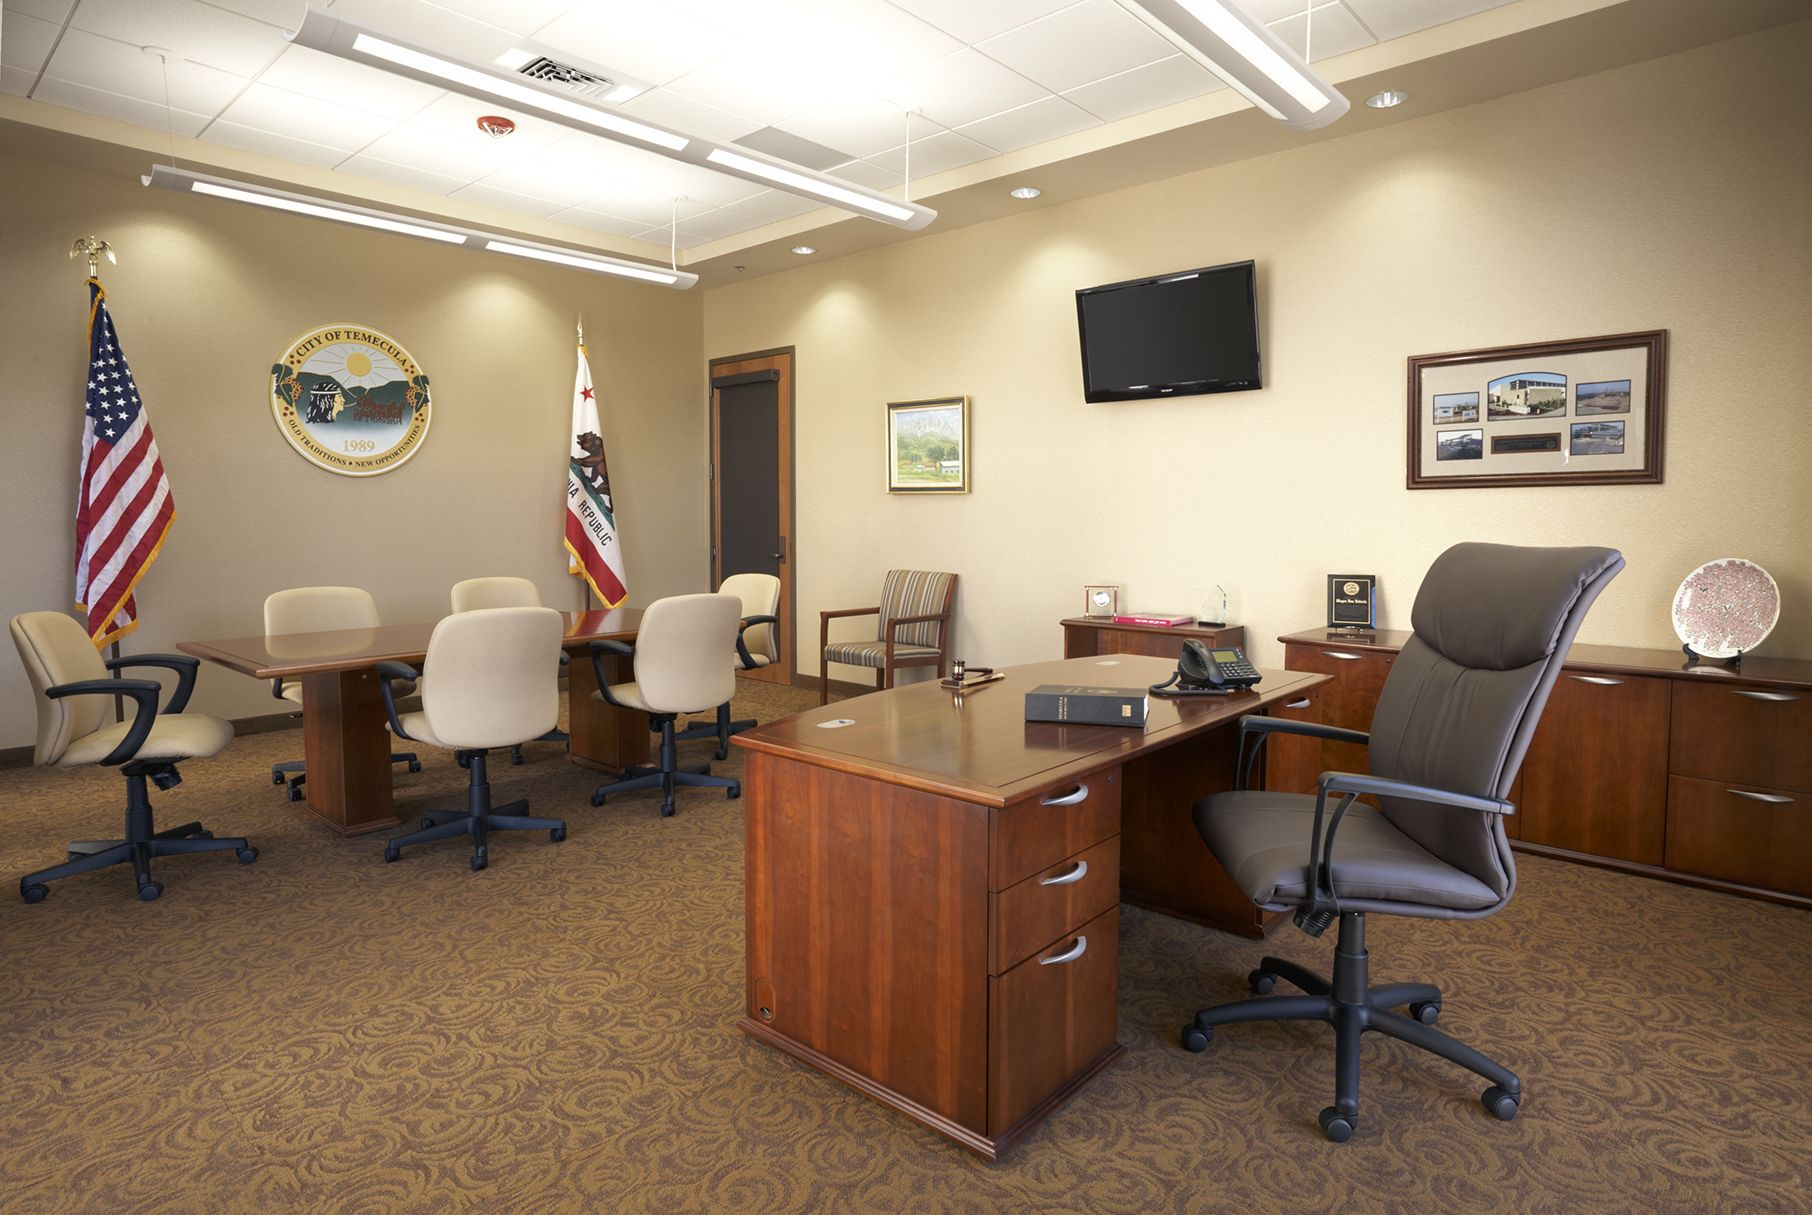 City of Temecula (Temecula, CA) Respect executive/managment and Truimph task/work seating in private office. #NationalOffice #F… | Home, Private office, Home decor